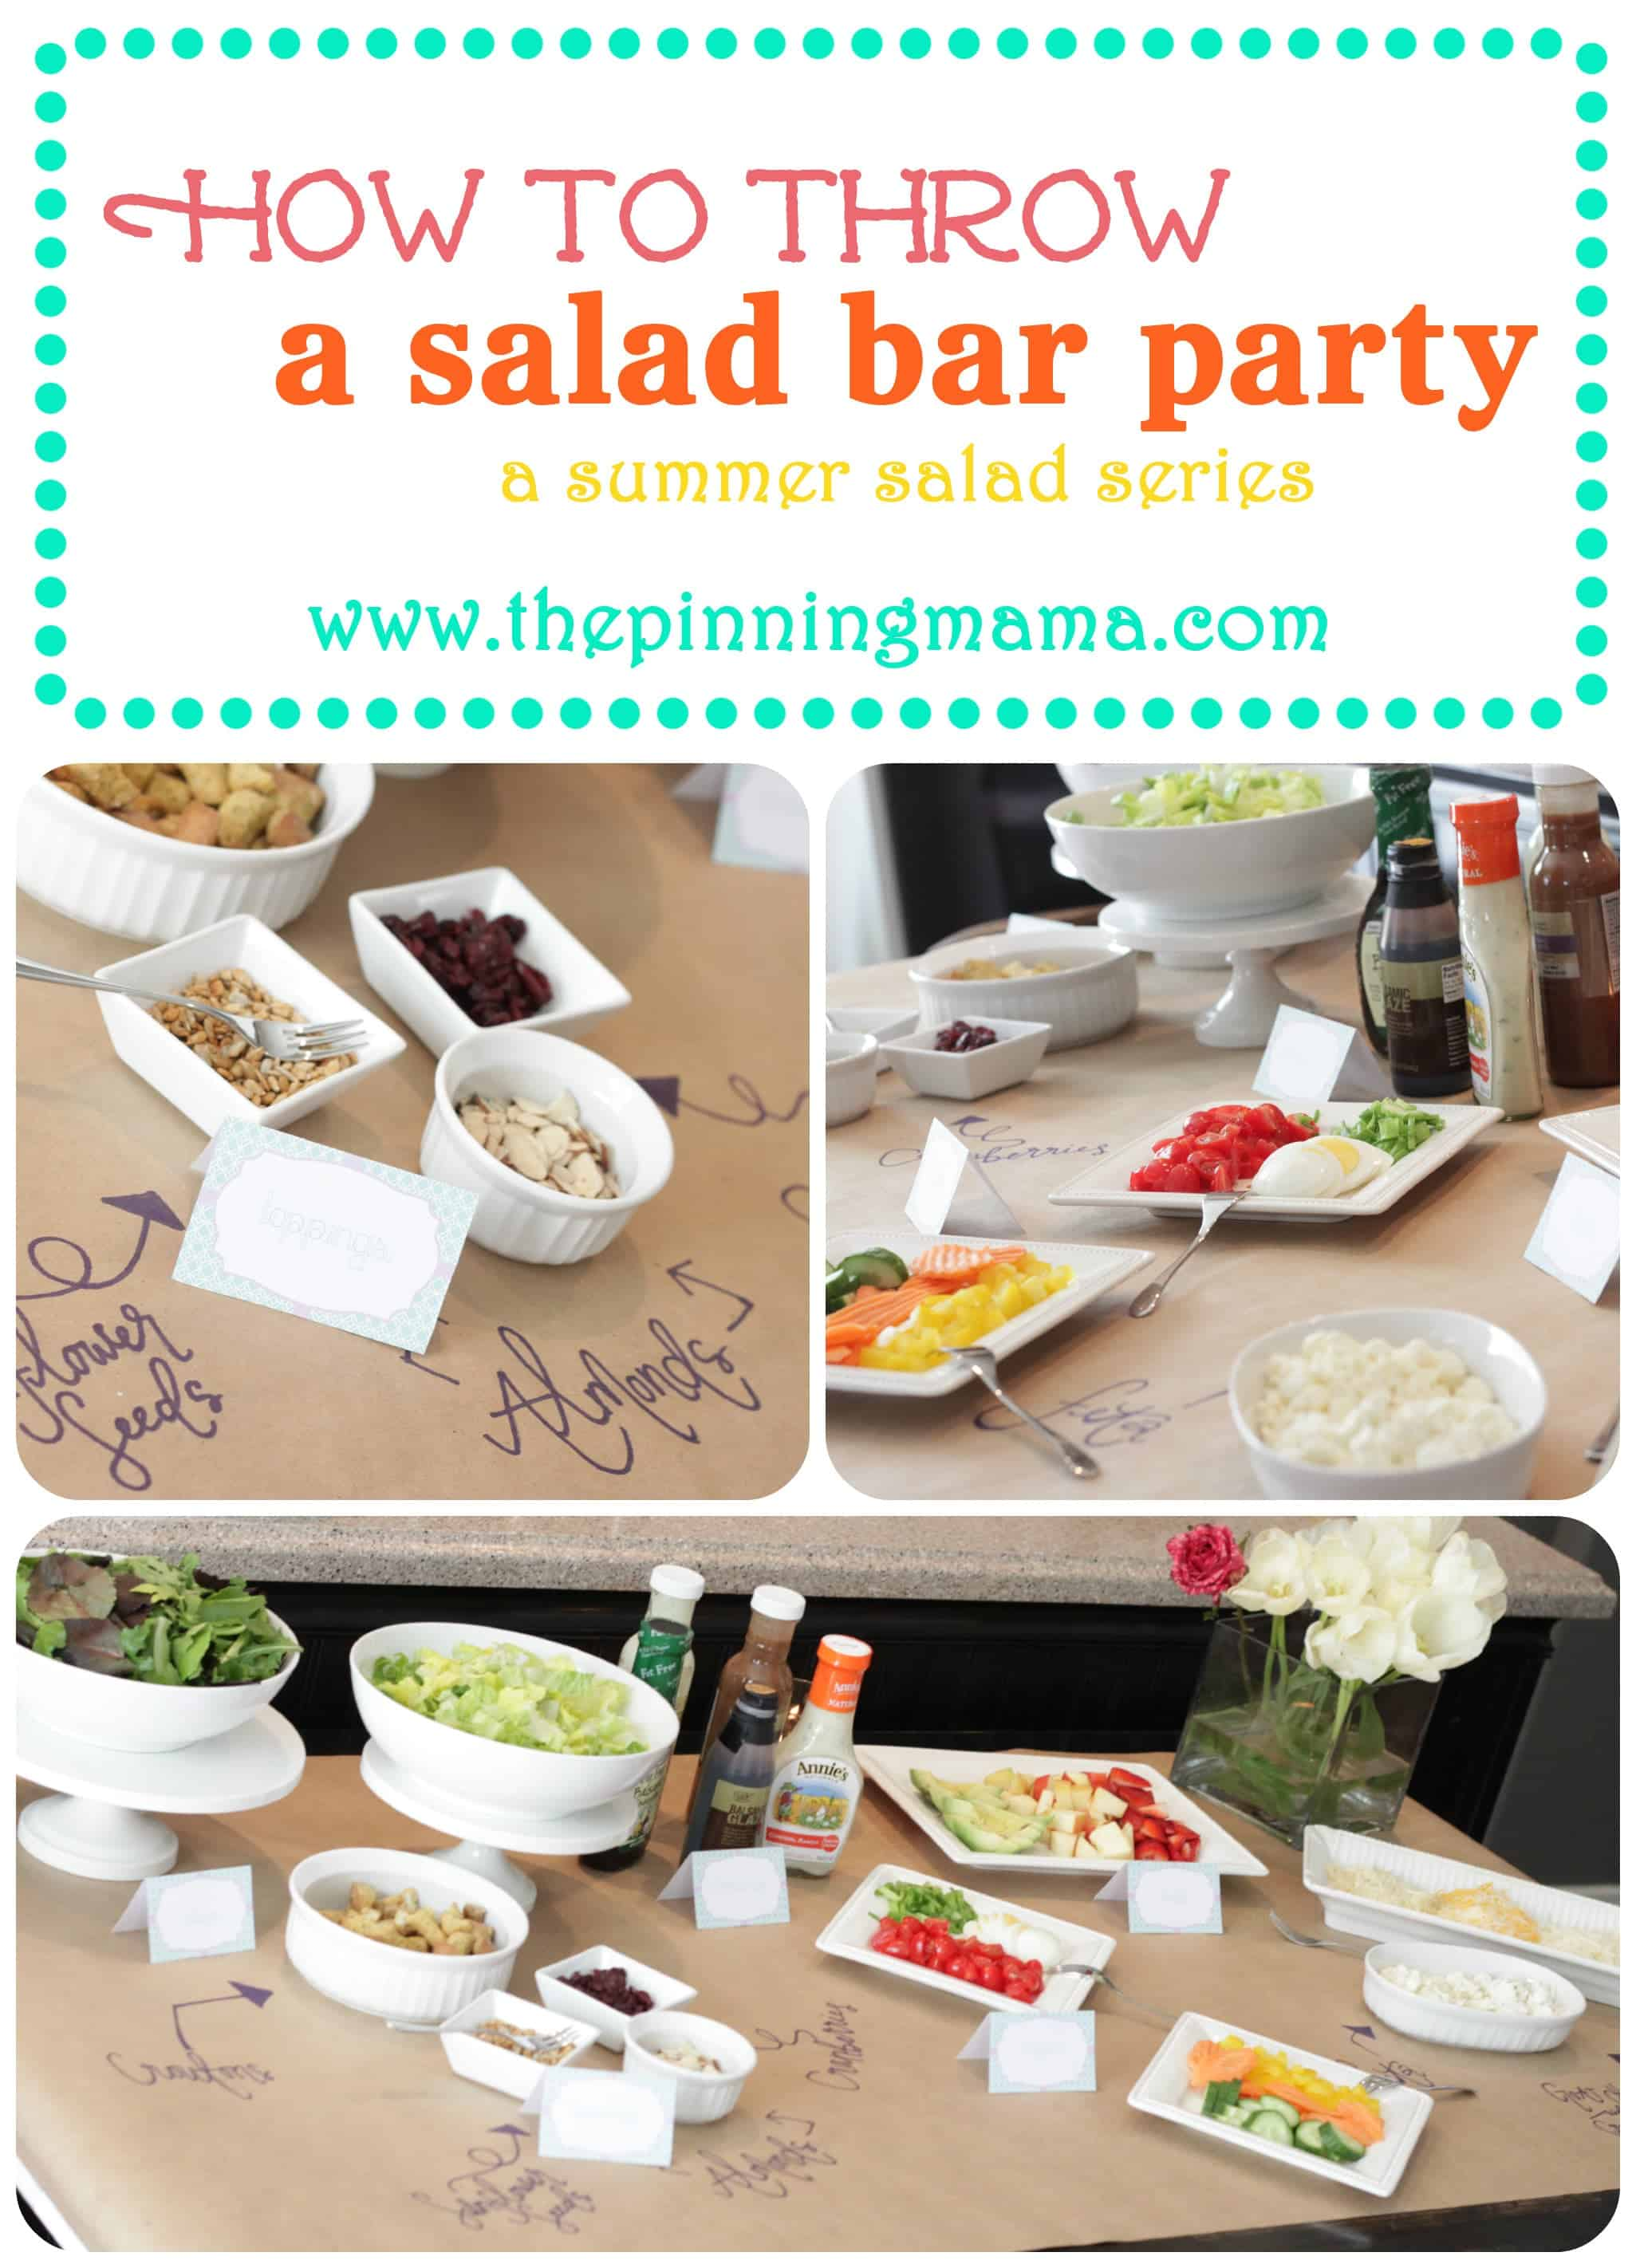 How to throw a salad bar party and a printable the for Food bar ideas for a party